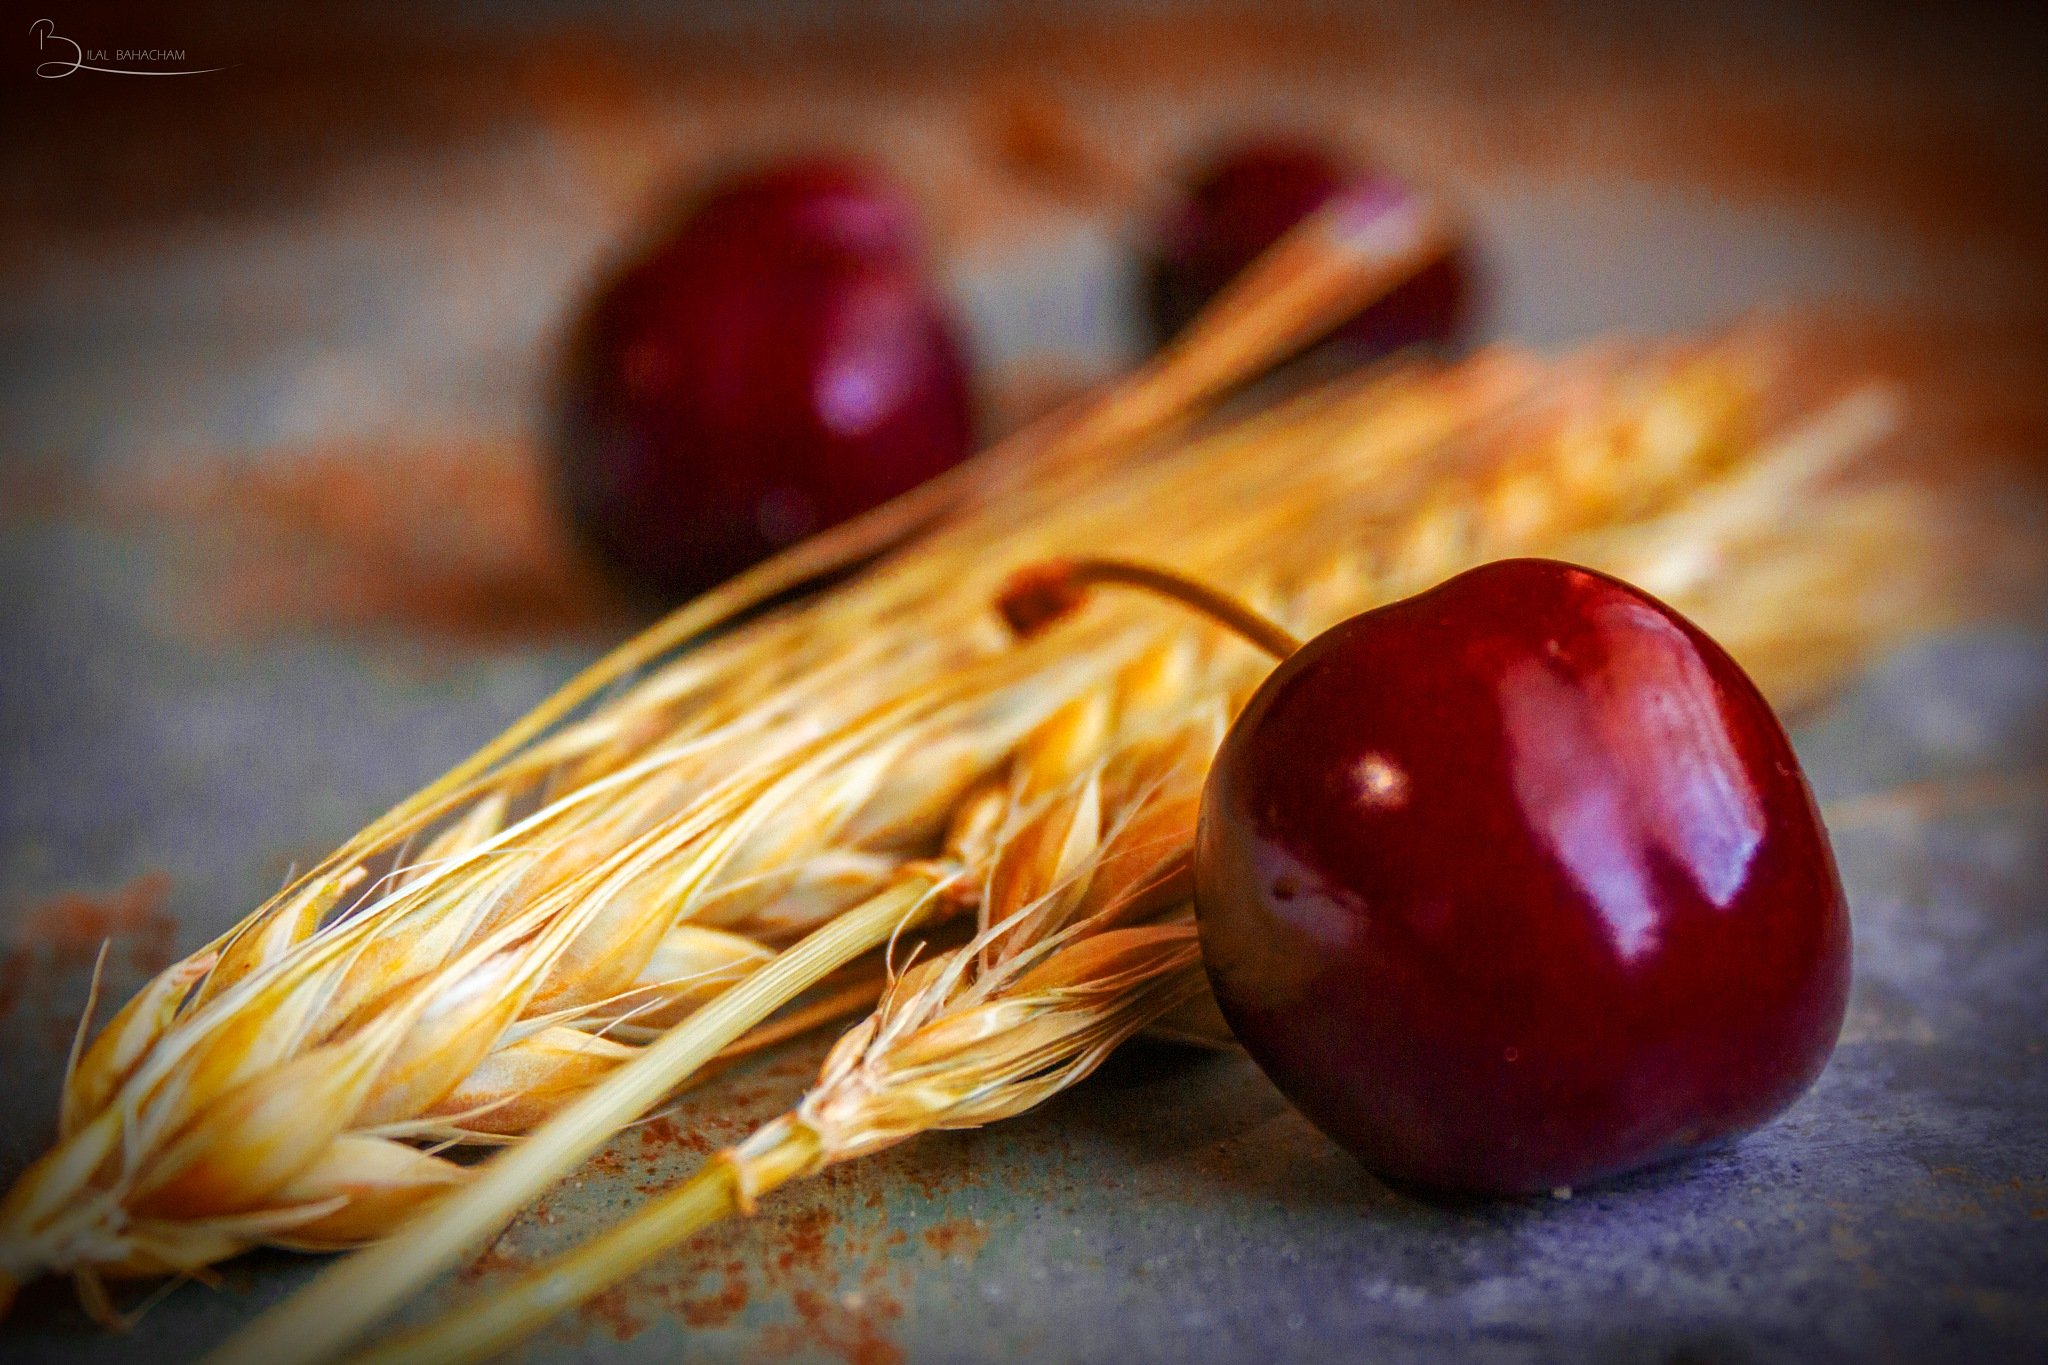 cherries and Wheat spike by Bilalbahacham